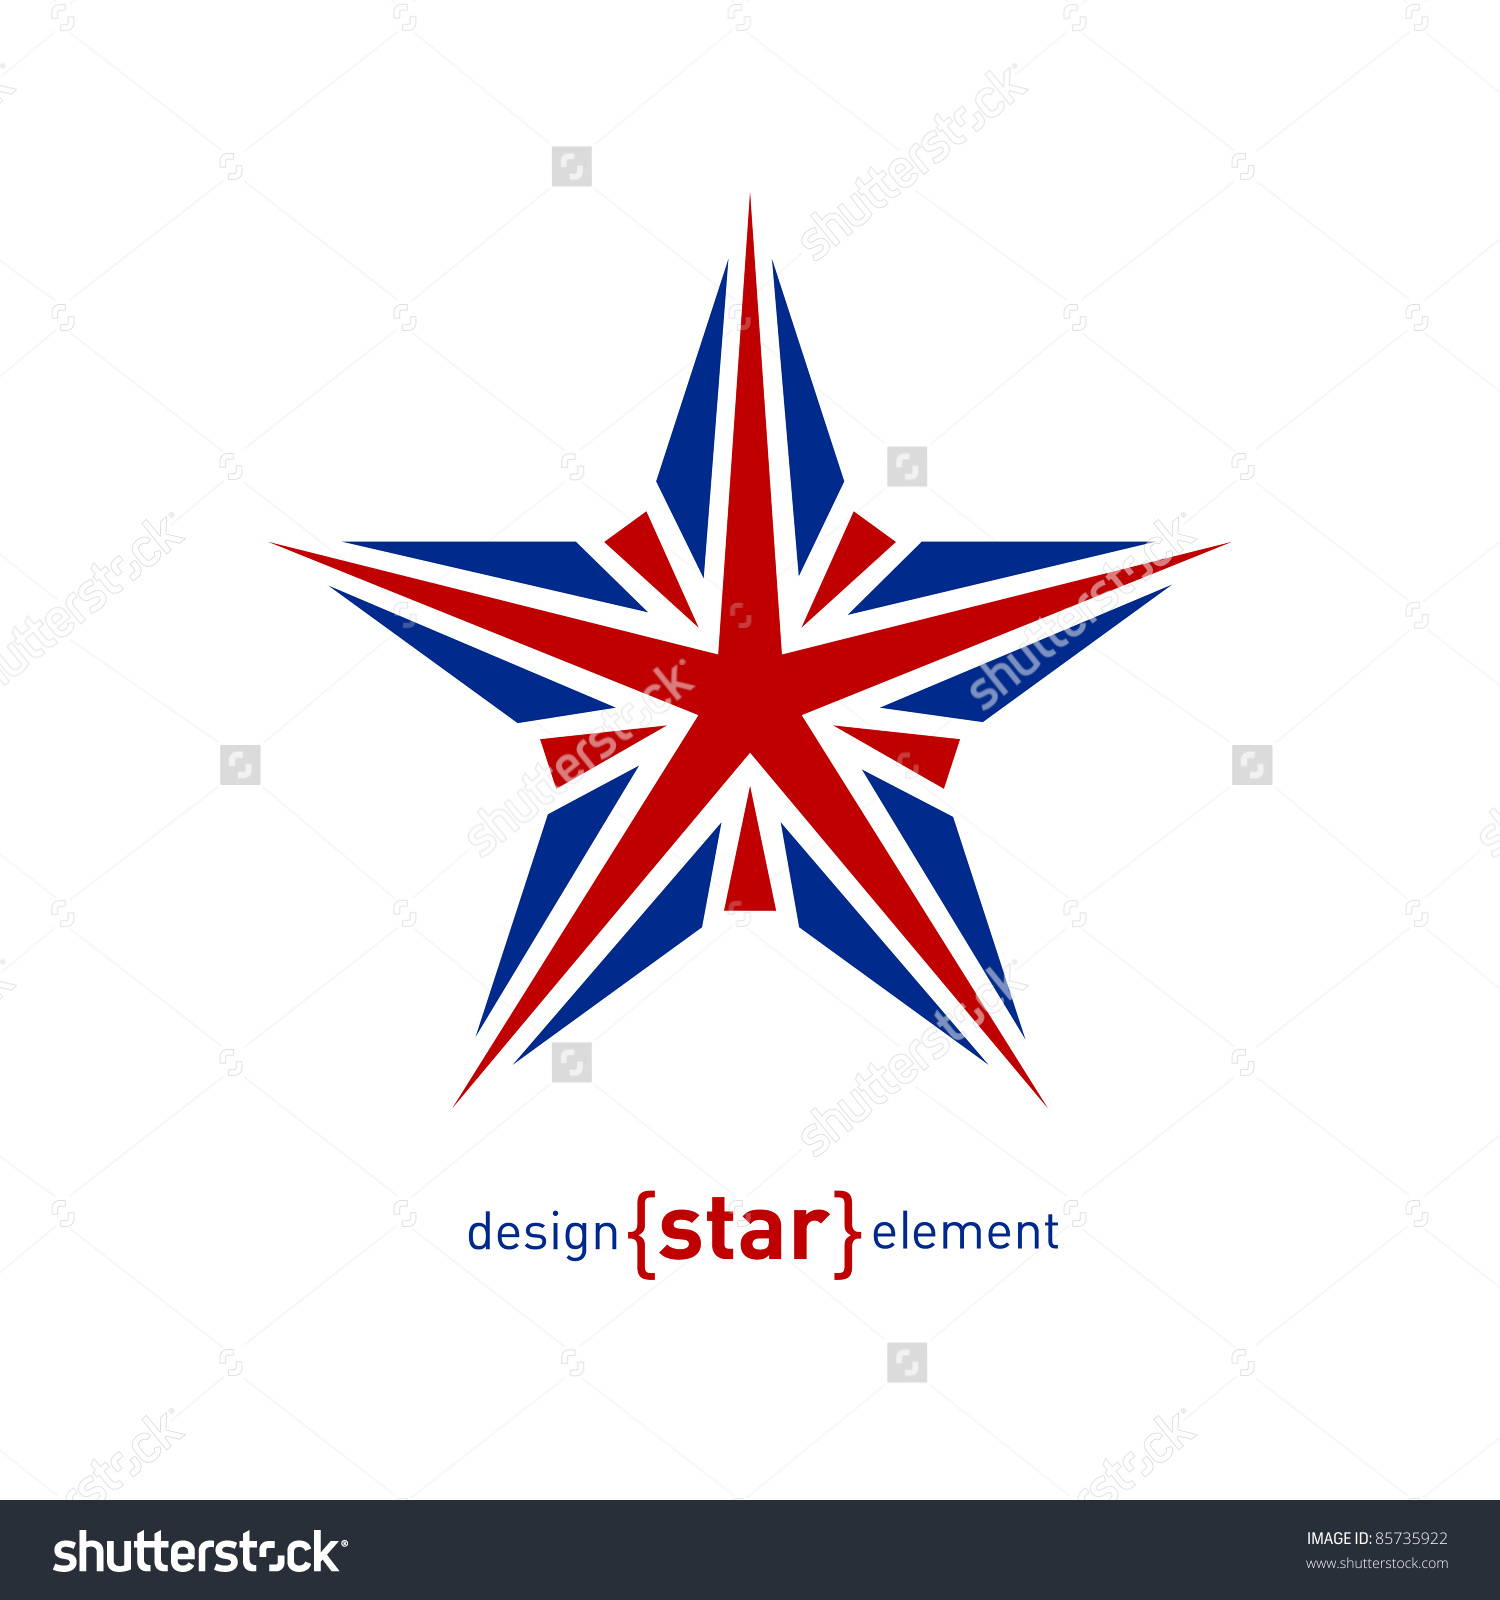 Image Red black star flag.png | MicroWiki | Fandom powered by Wikia